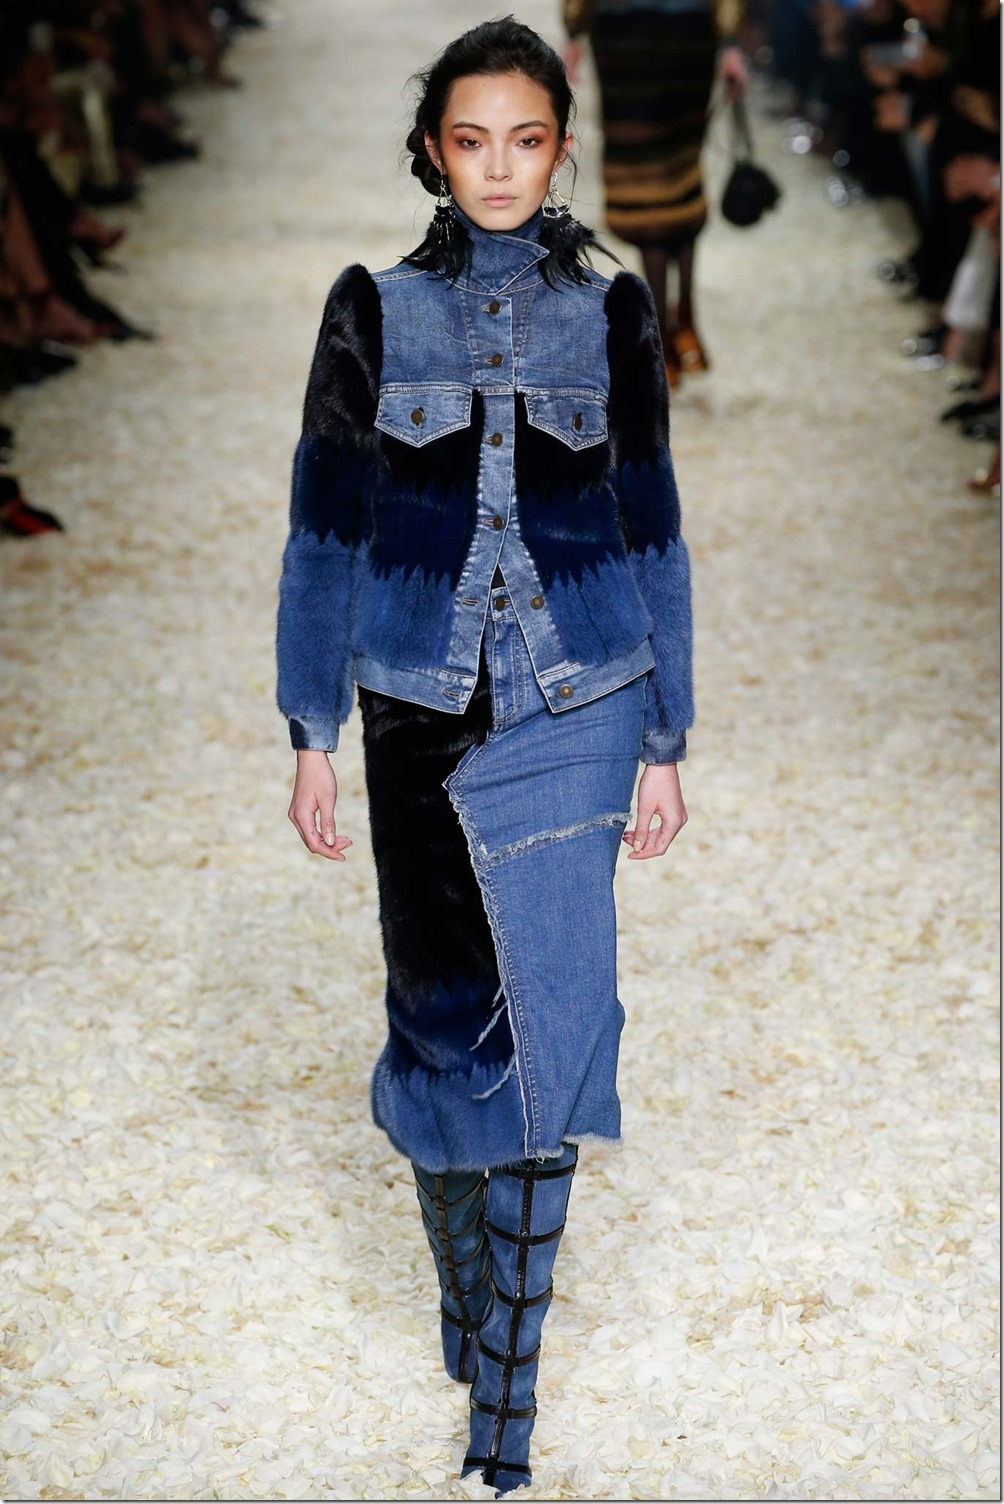 Tom Ford Fall 2015 Runway Patchwork Denim Collection denimsandjeans